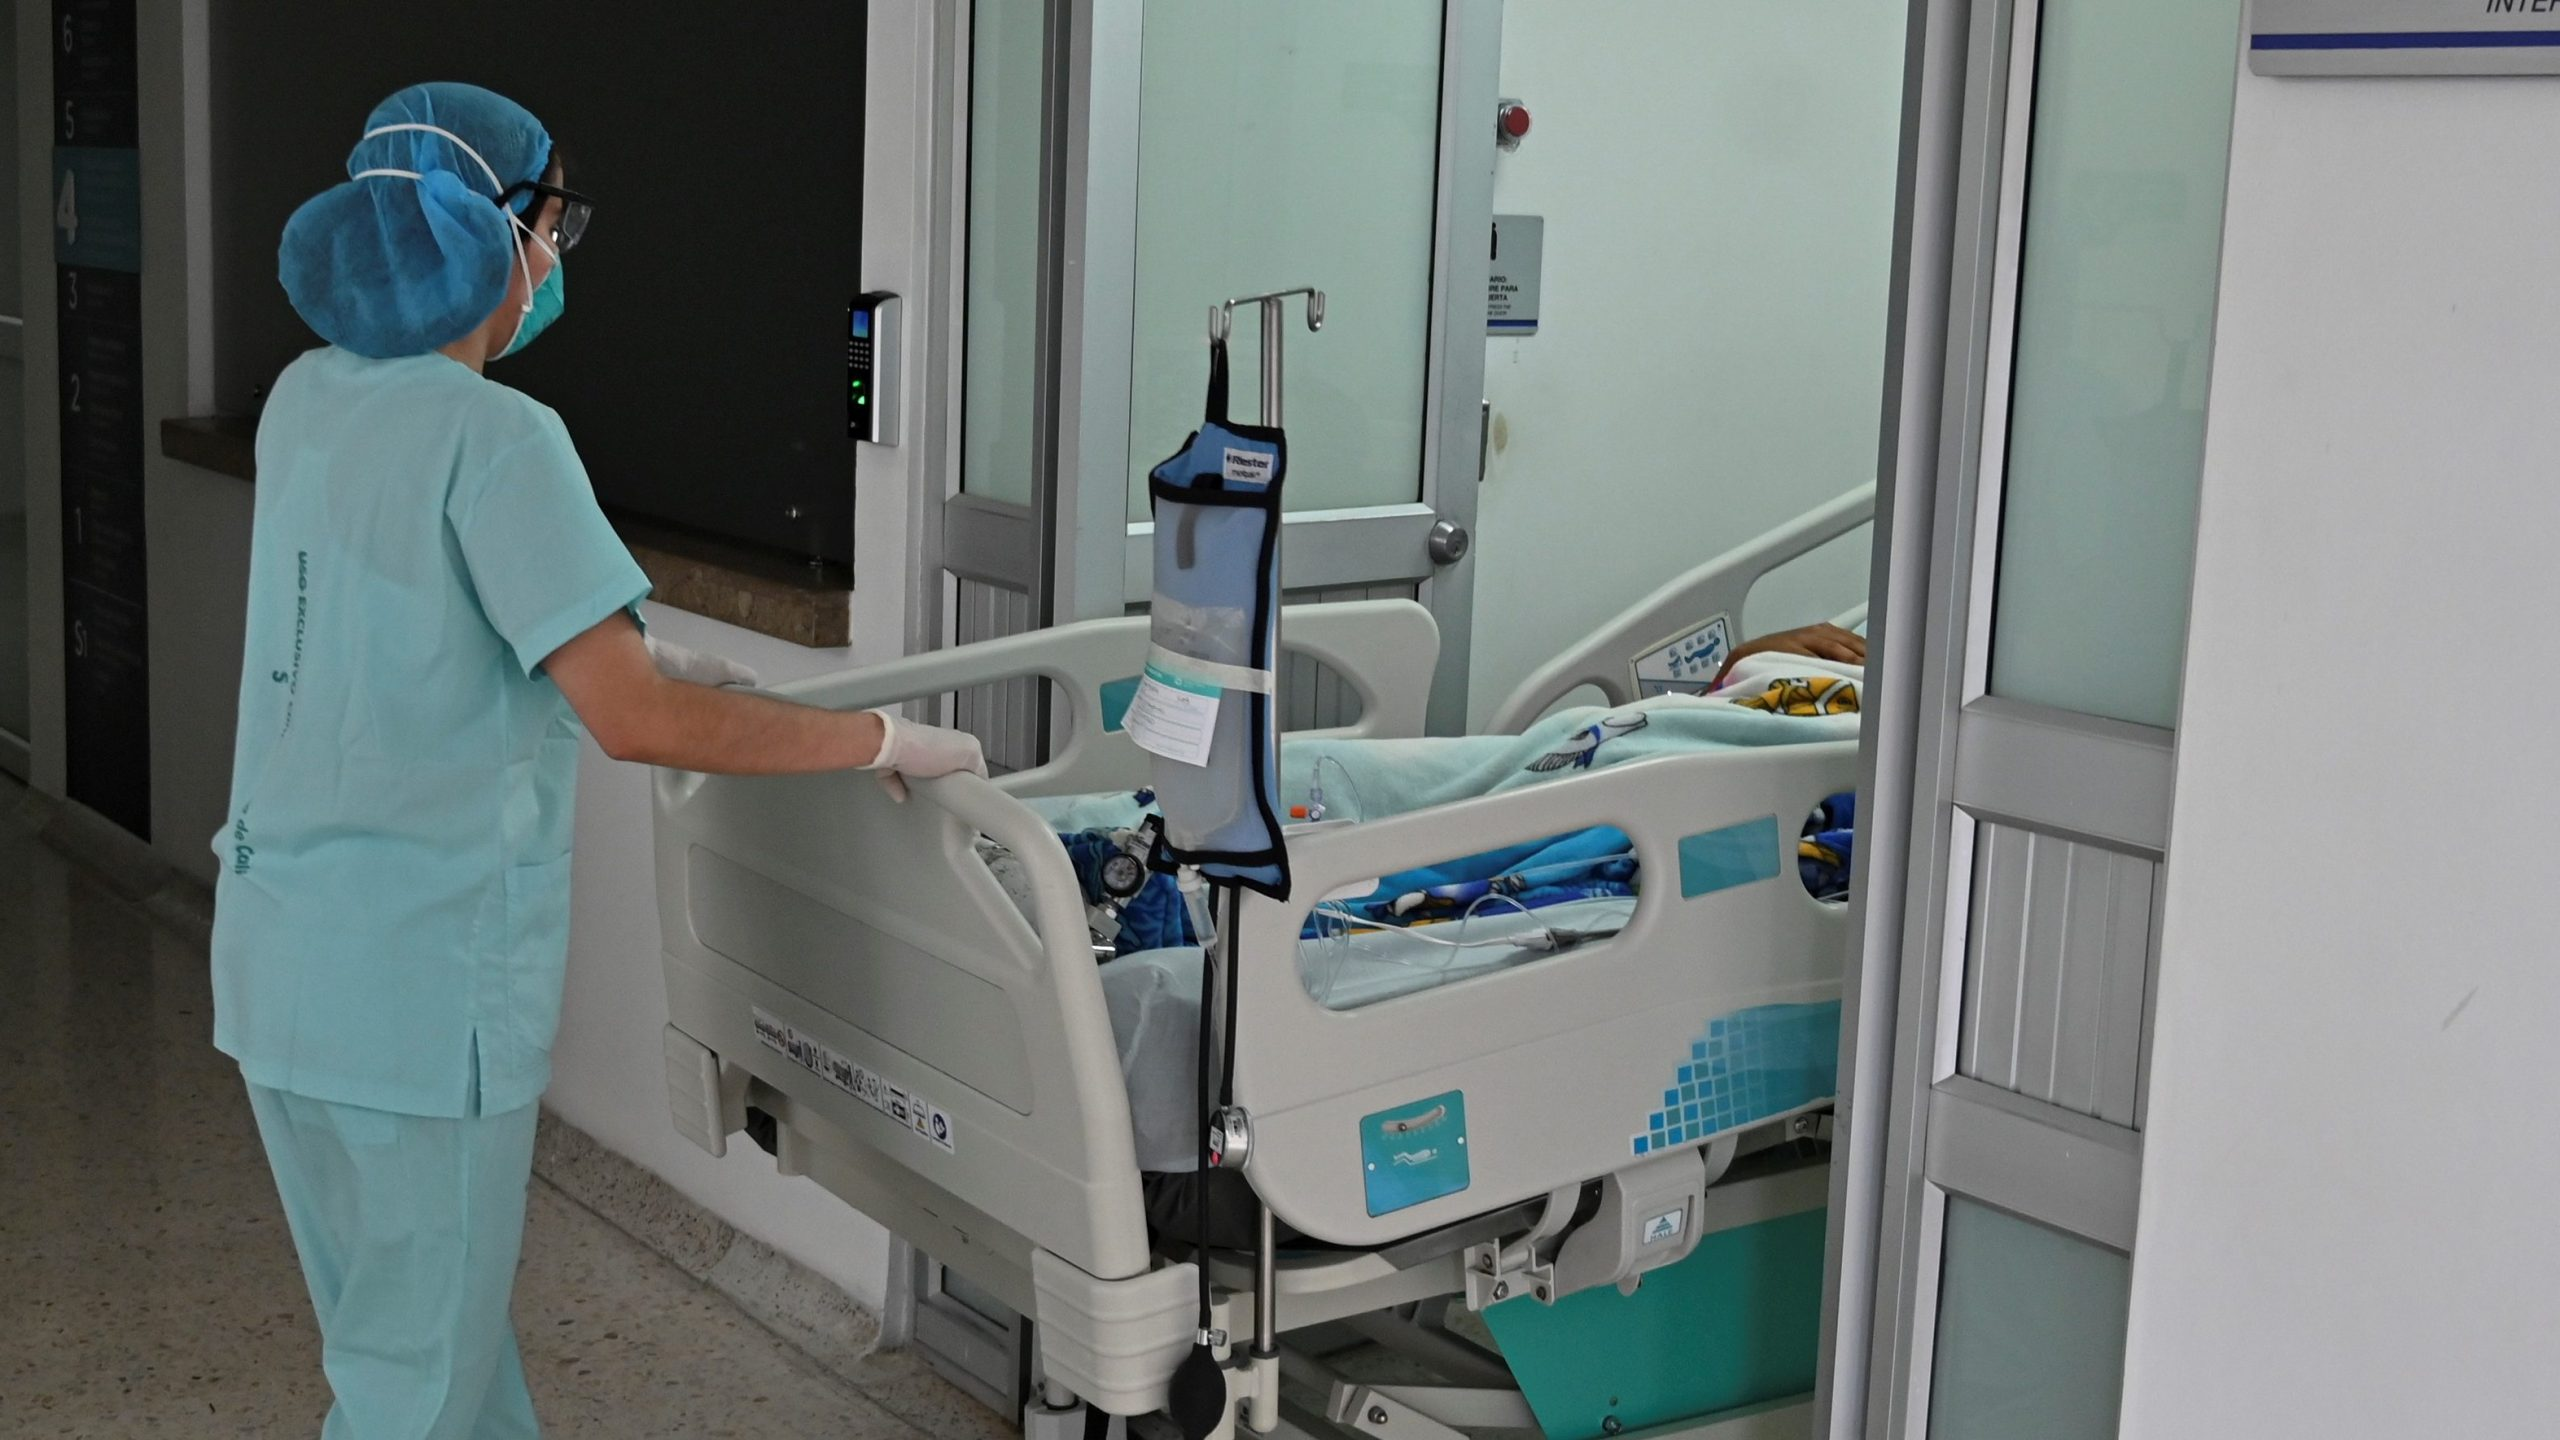 A nurse transfers a patient at the intensive care unit of the 'Clinica Nueva de Cali' clinic in Cali, Colombia on March 24, 2020 during the COVID-19 pandemic.